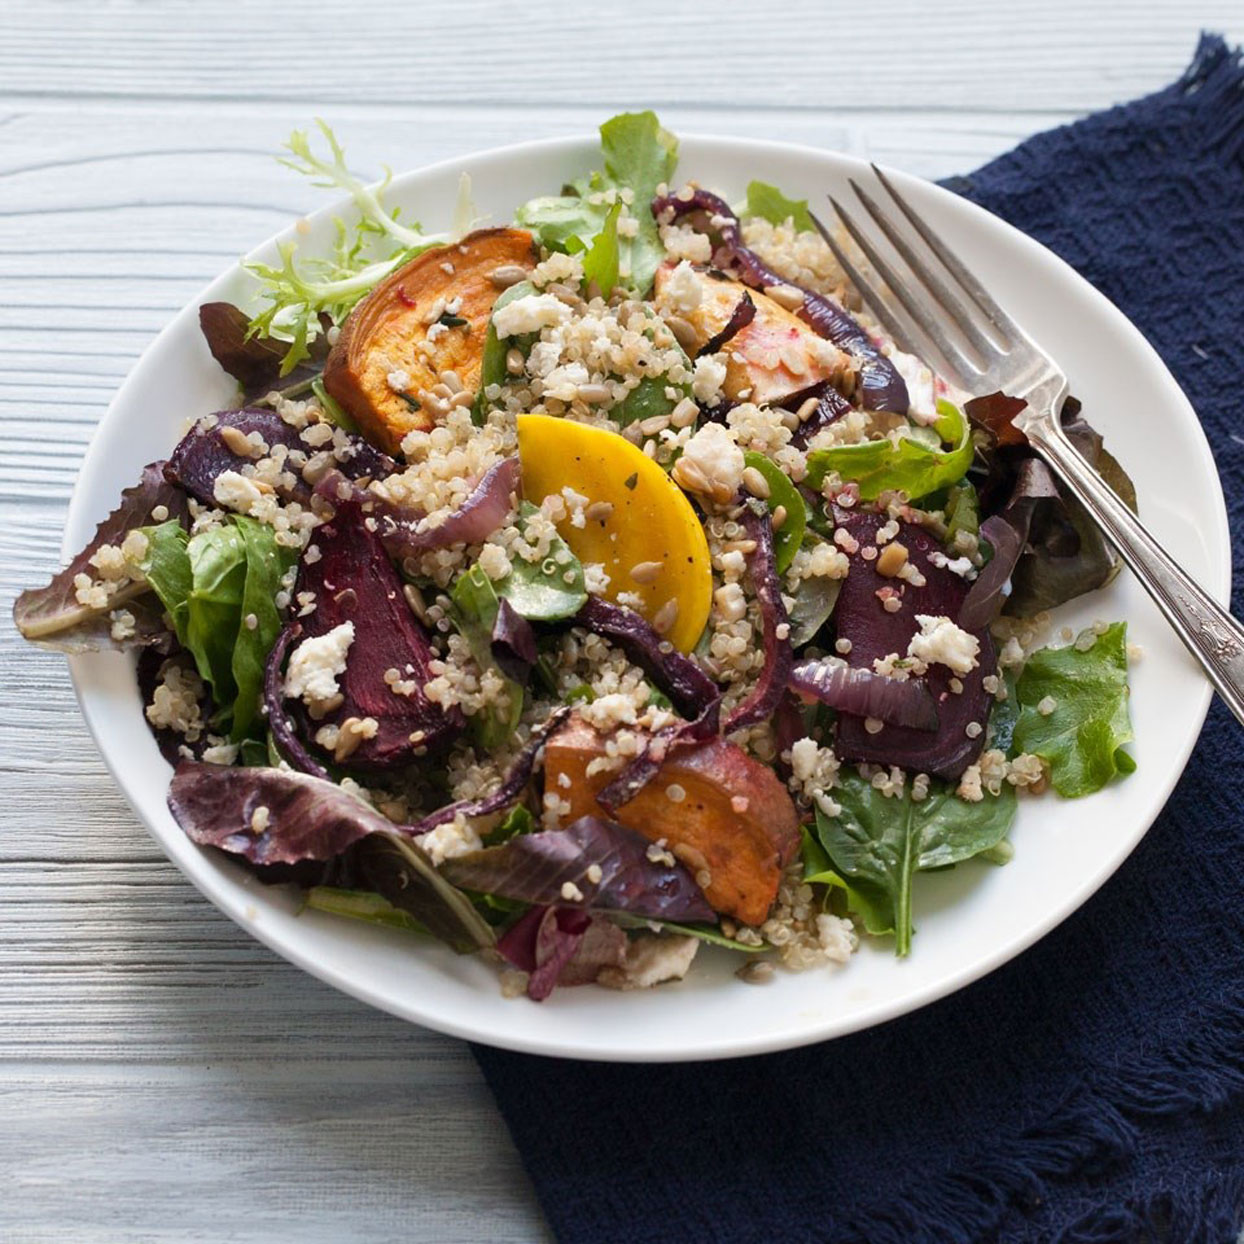 Quick, simple and packed with satisfying protein and fiber, this salad makes a perfect lunch or easy one-dish dinner.